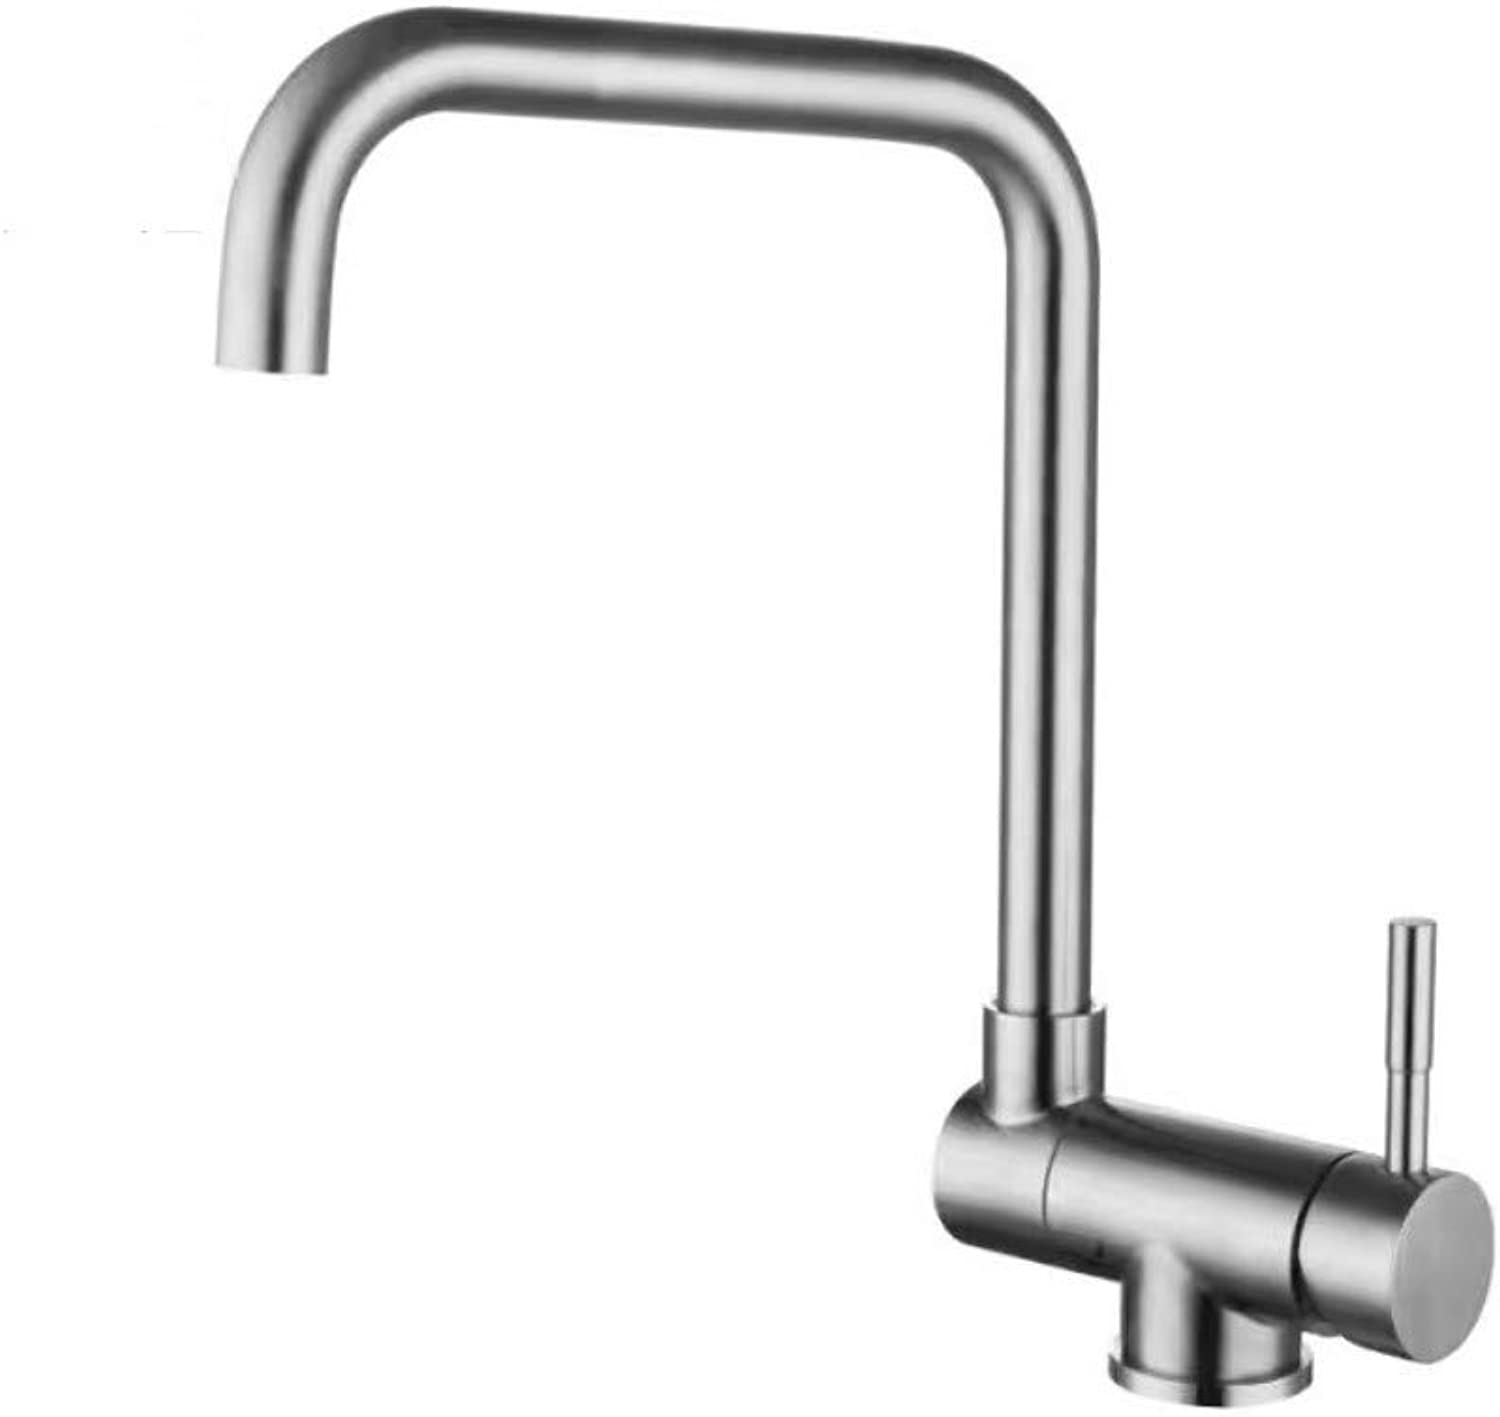 Stainless Steel Brushed Basin Inside Window Hot and Cold Faucet Lead-Free Double Turn Faucet